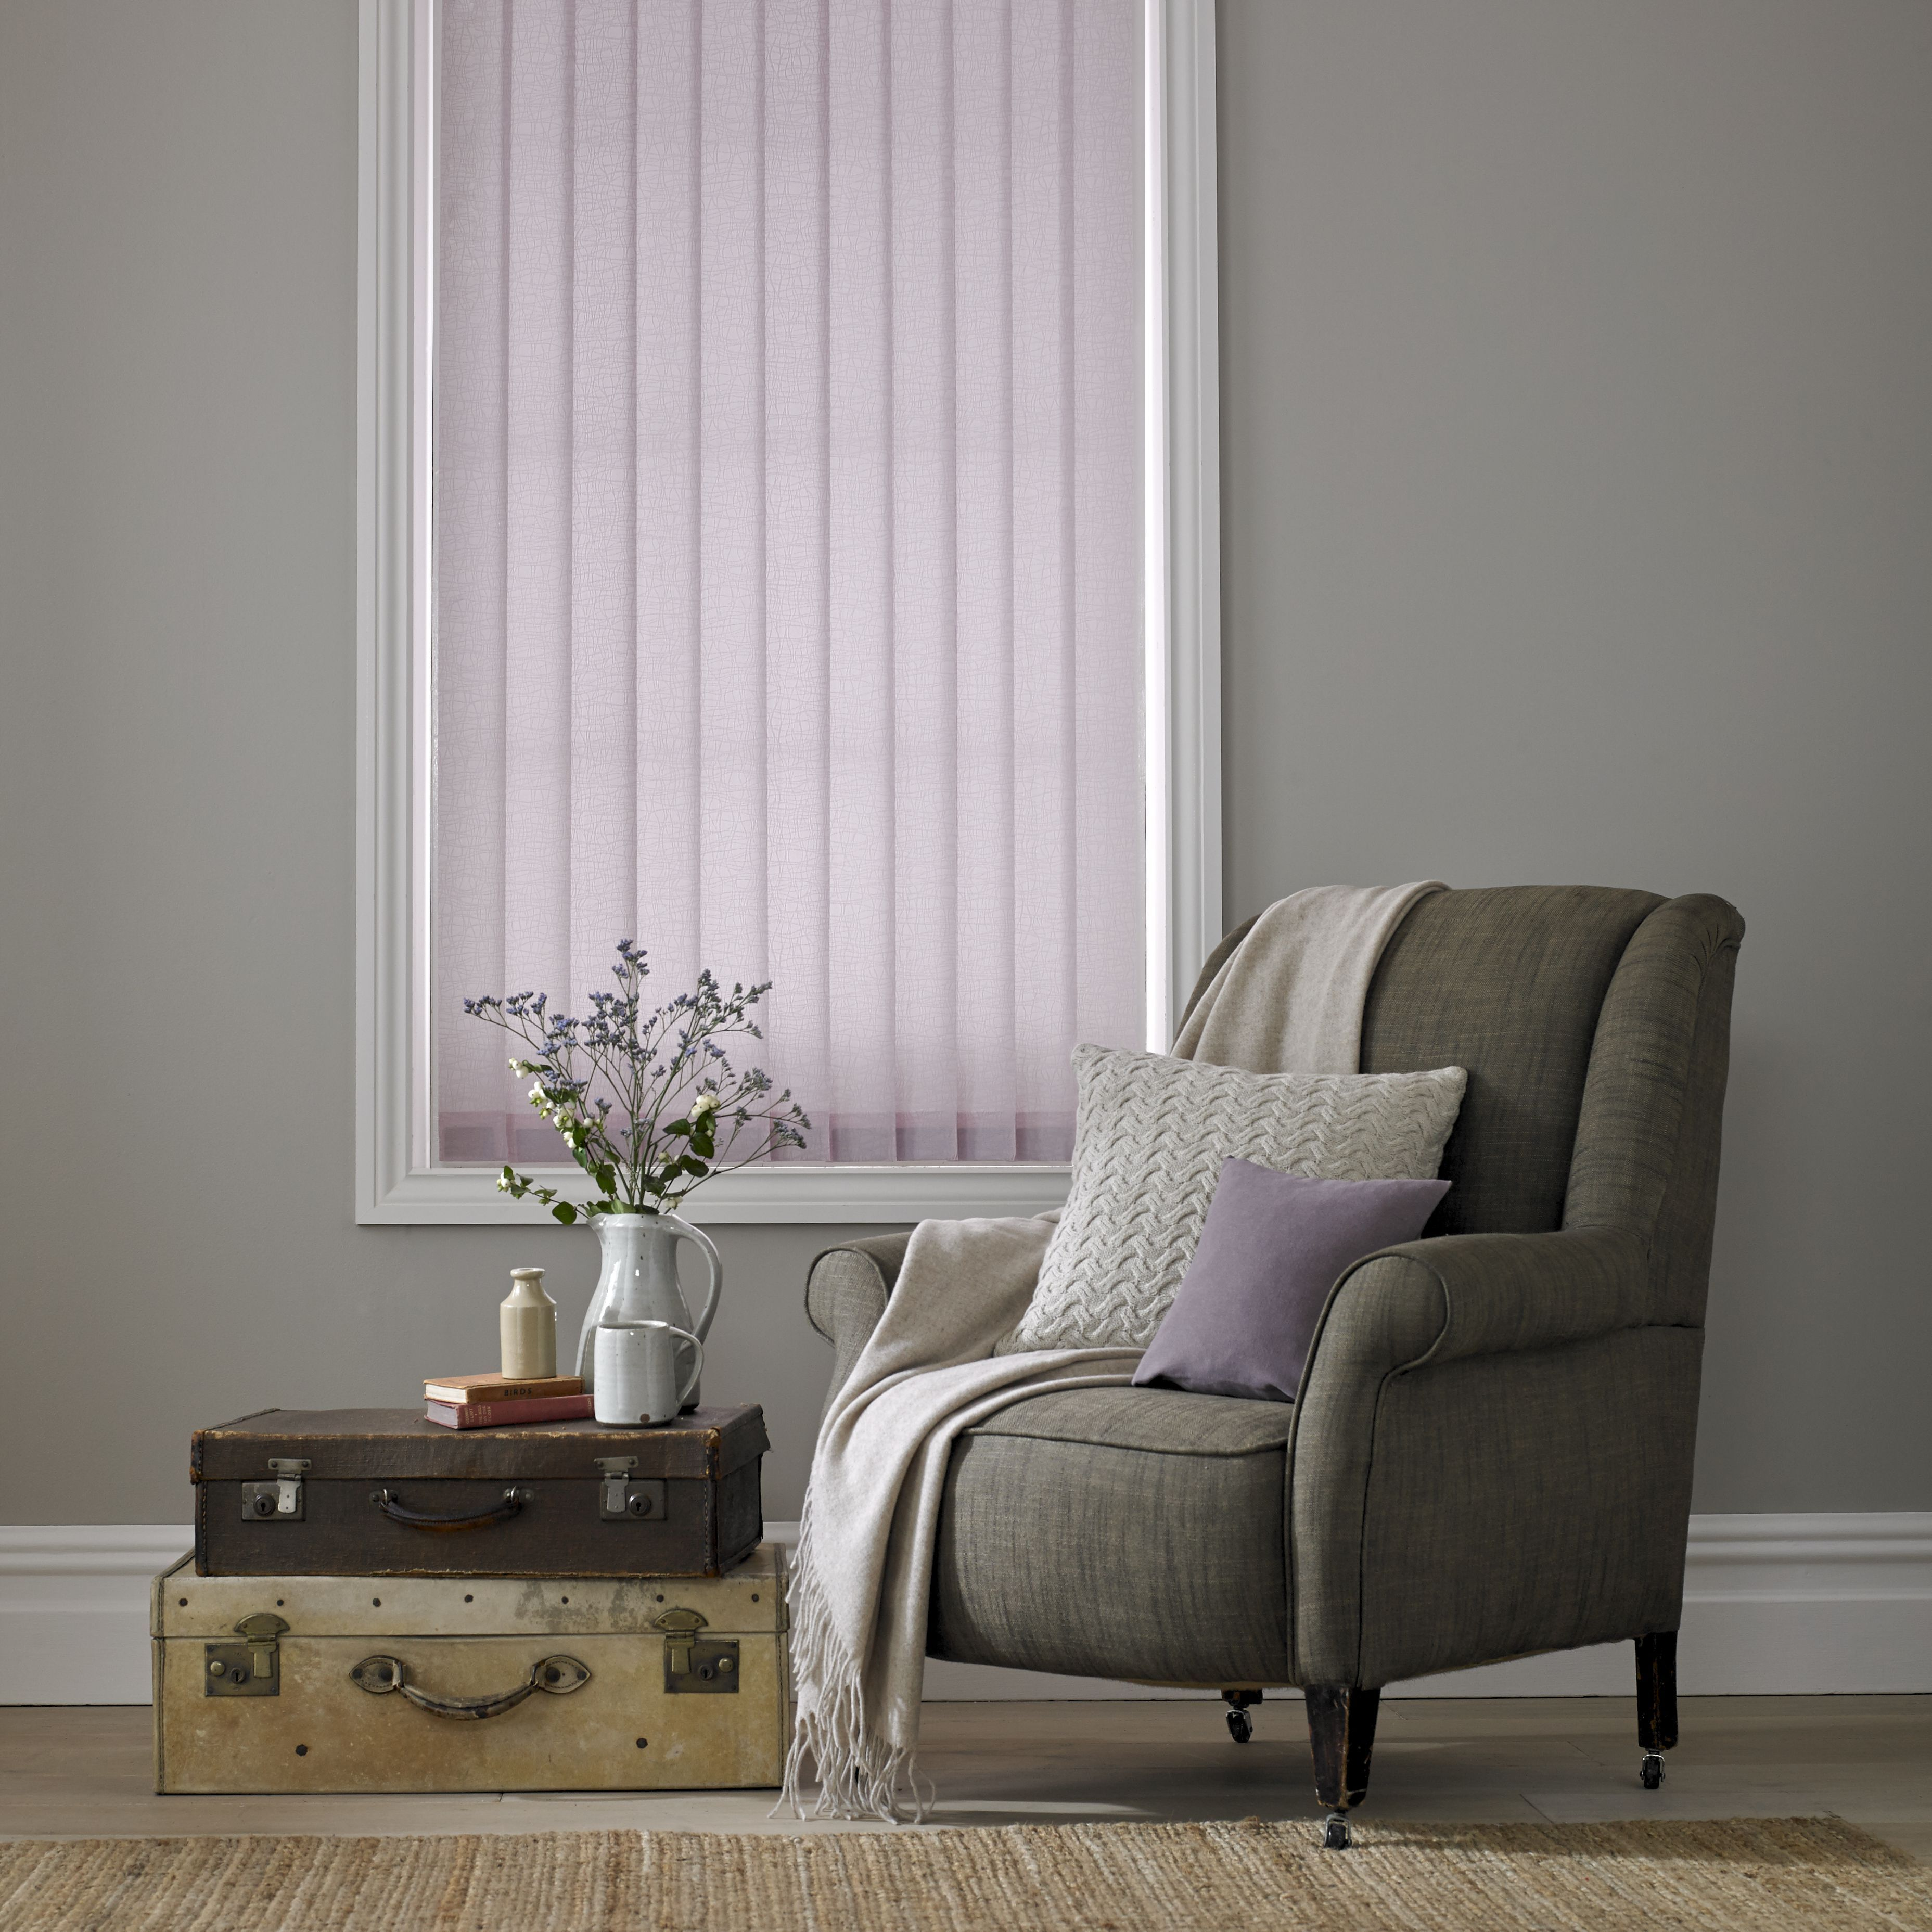 Luxe Orchid Vertical Blinds By Style Studio Living Room Blind Modern Window Dressing Lilac Vertical B Living Room Blinds Roller Blinds Curtains With Blinds